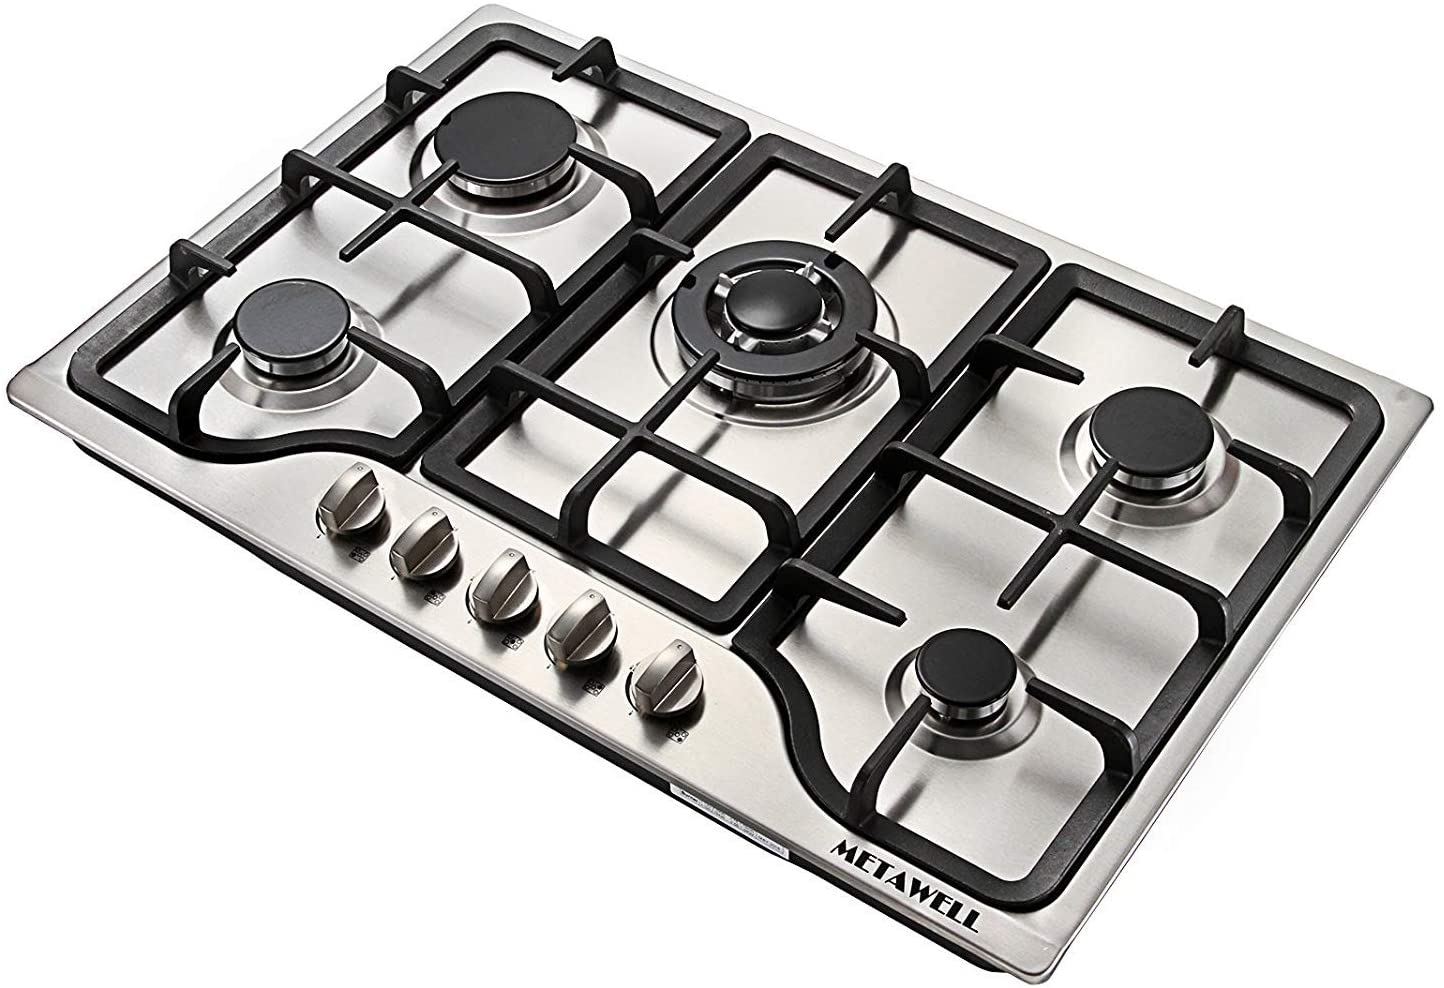 METAWELL 5 Burner NG Gas Hob Cooktop